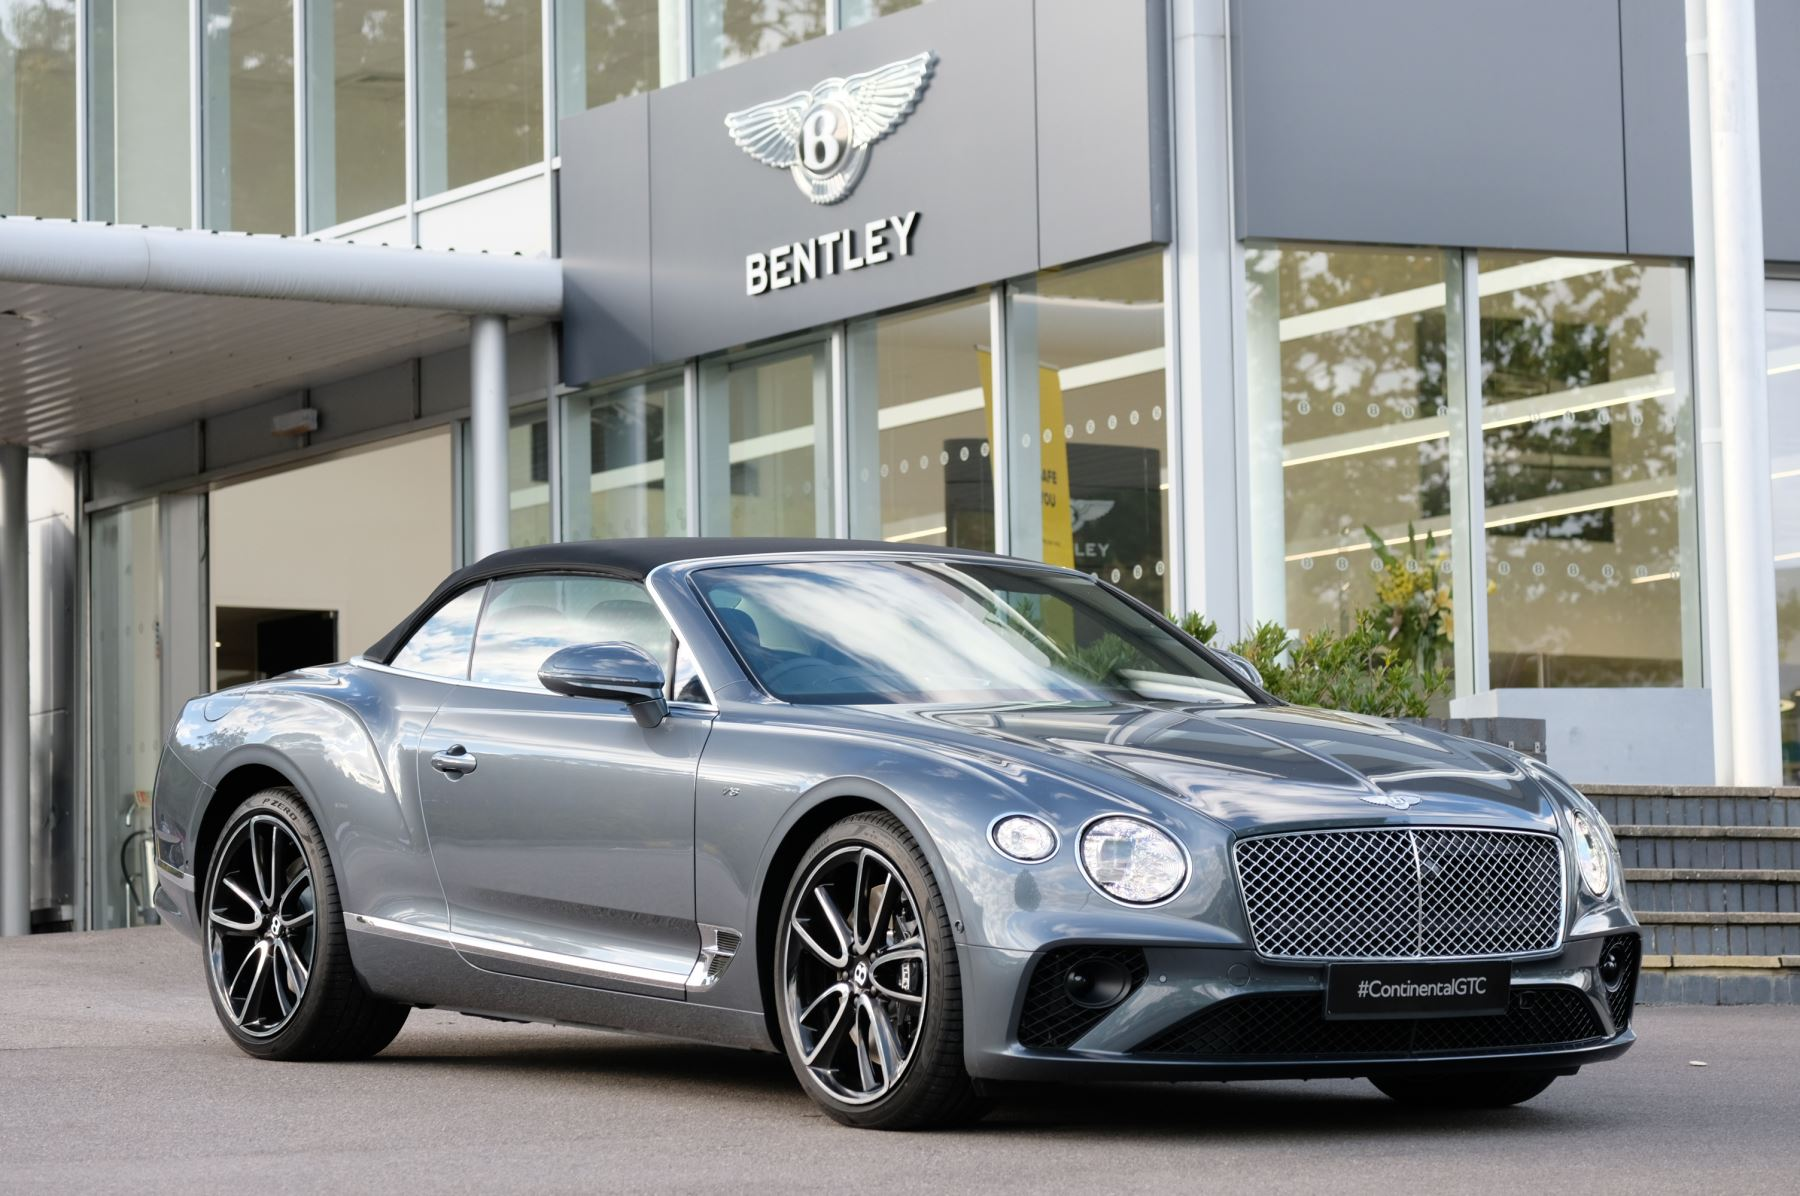 Bentley Continental GTC 4.0 V8 2dr Auto Mulliner Driving and Technology Specification Automatic Convertible (2020)